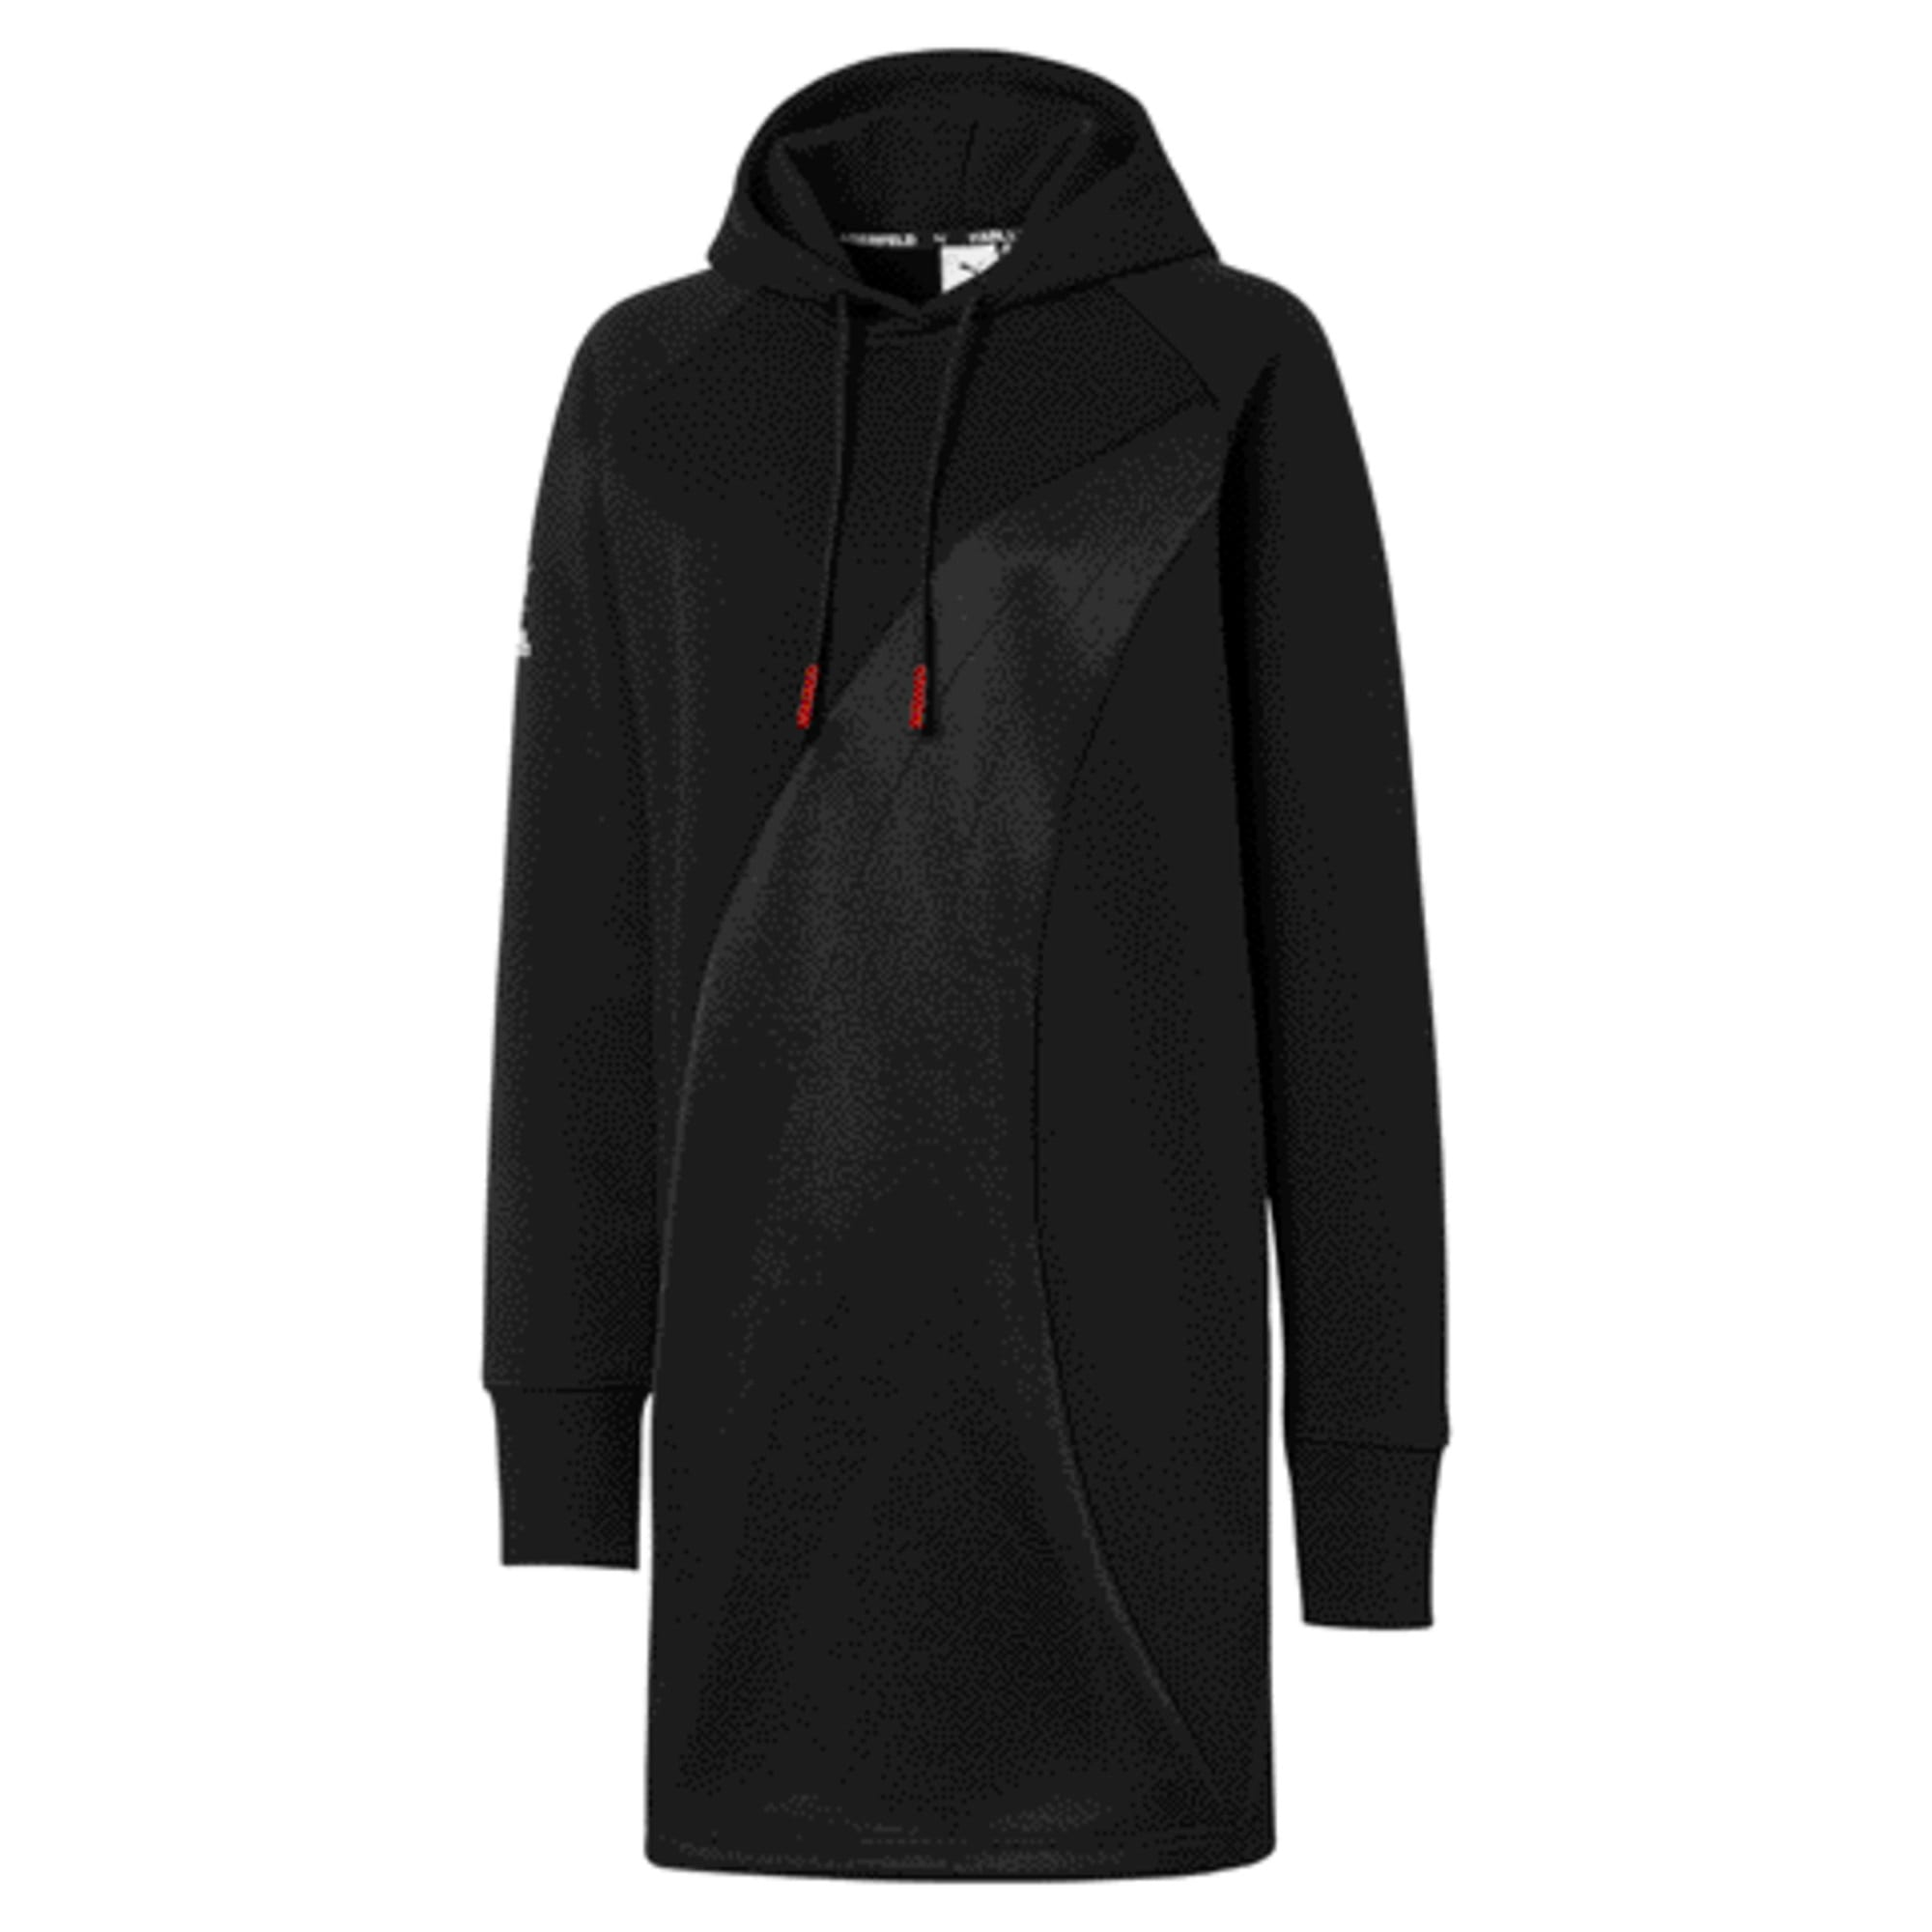 Thumbnail 1 of PUMA x KARL LAGERFELD Hooded Women's Dress, Puma Black, medium